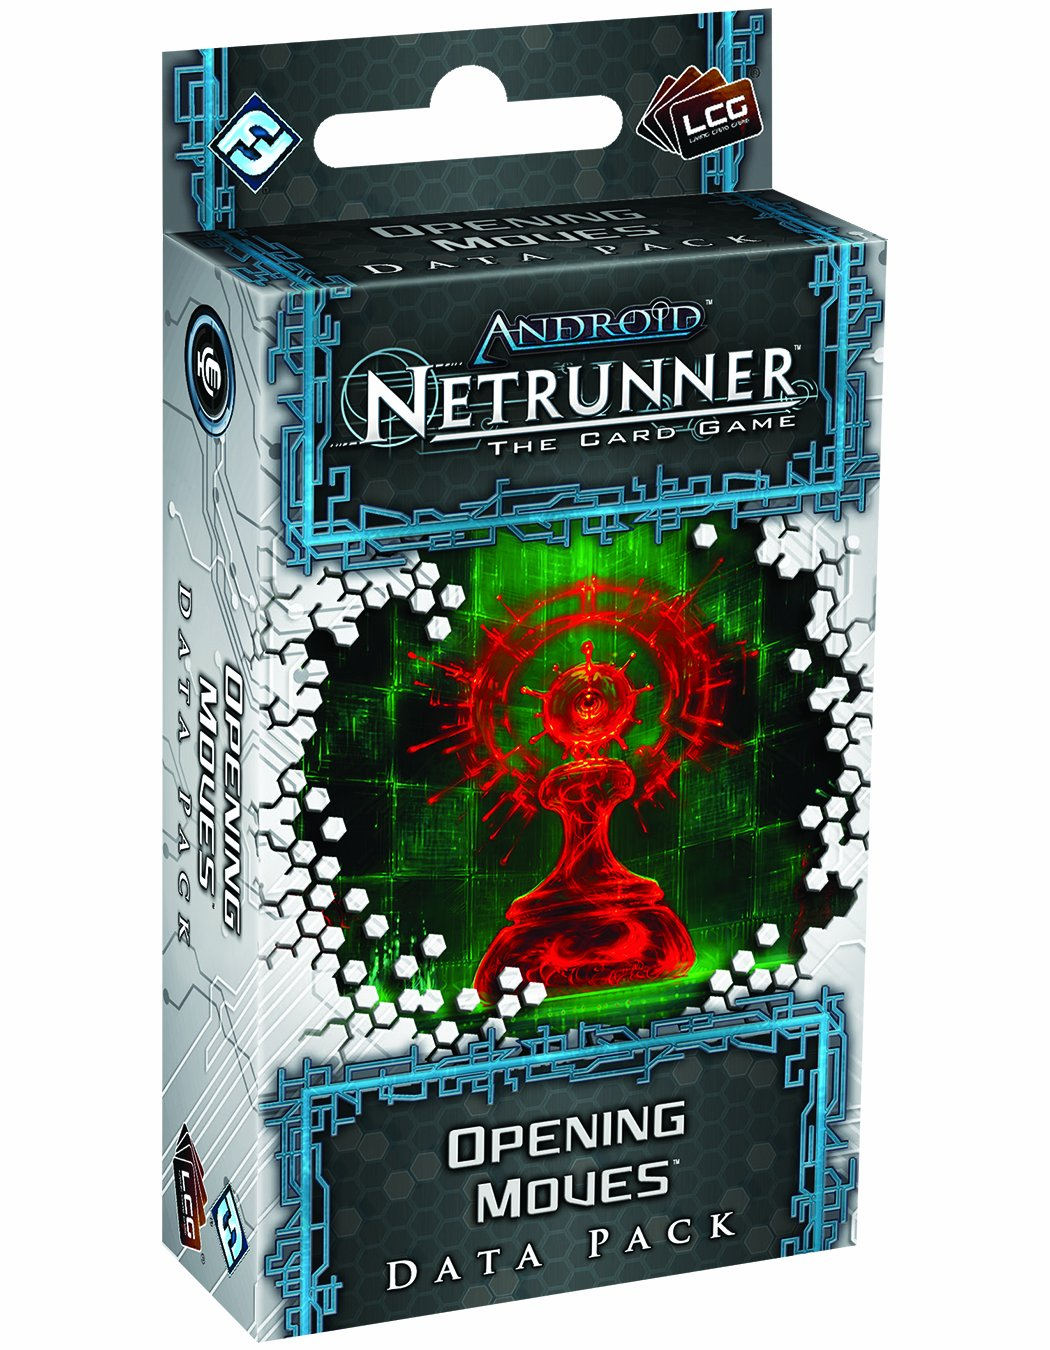 Amazon.com: Fantasy Flight Games Android: Netrunner The Card Game ...